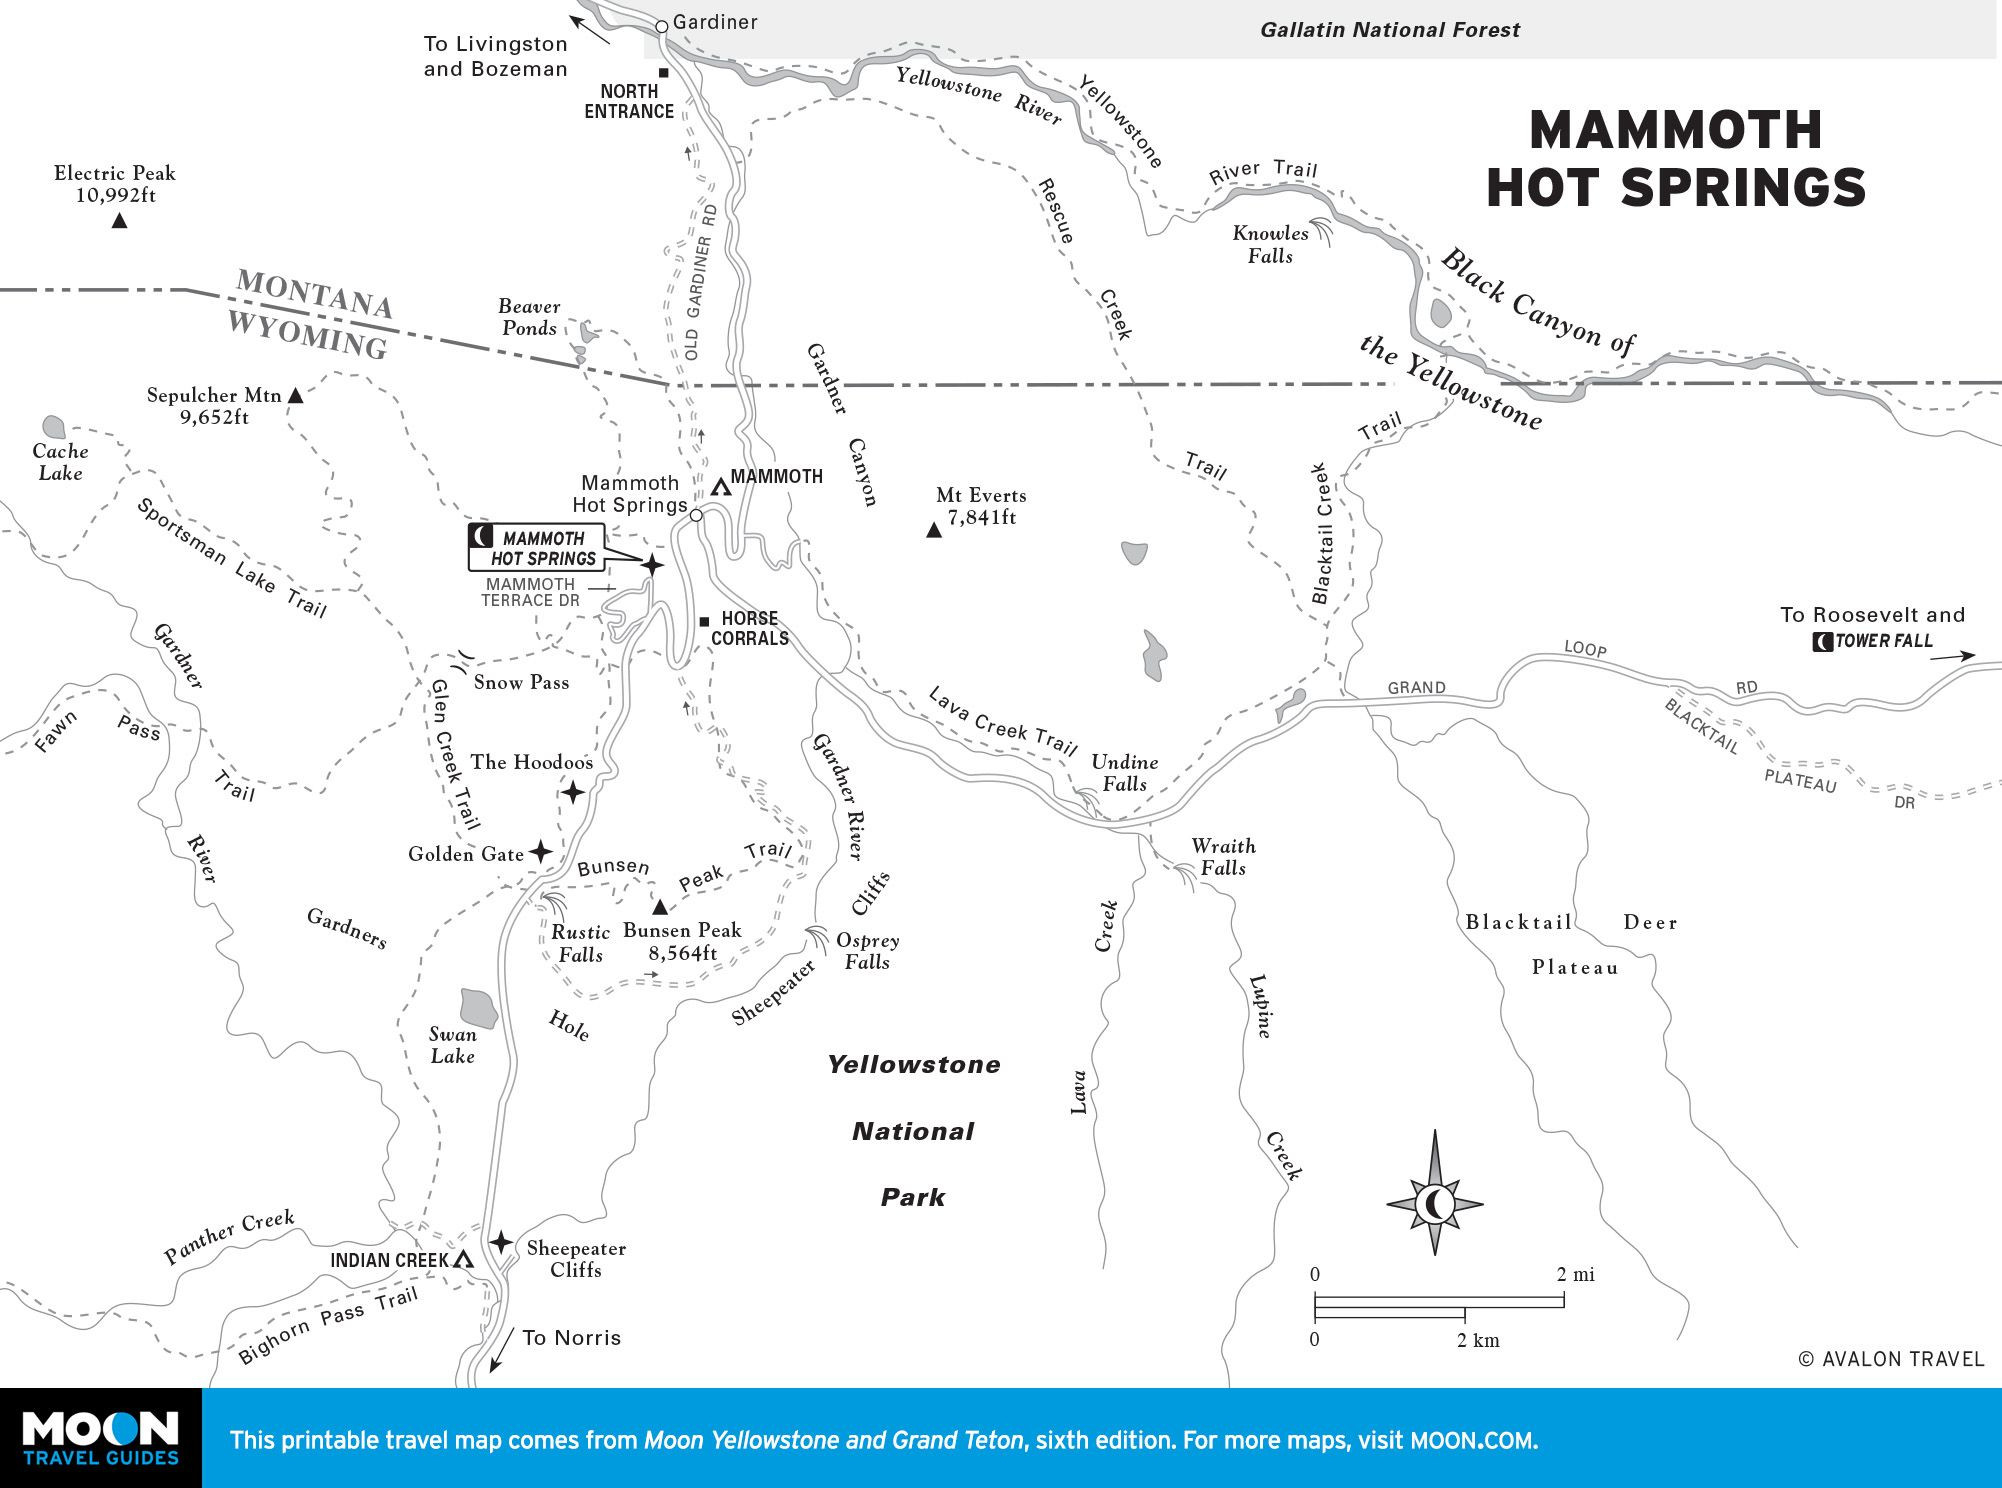 Hot Springs Southern California Map Detailed Image Result For - Mammoth California Map